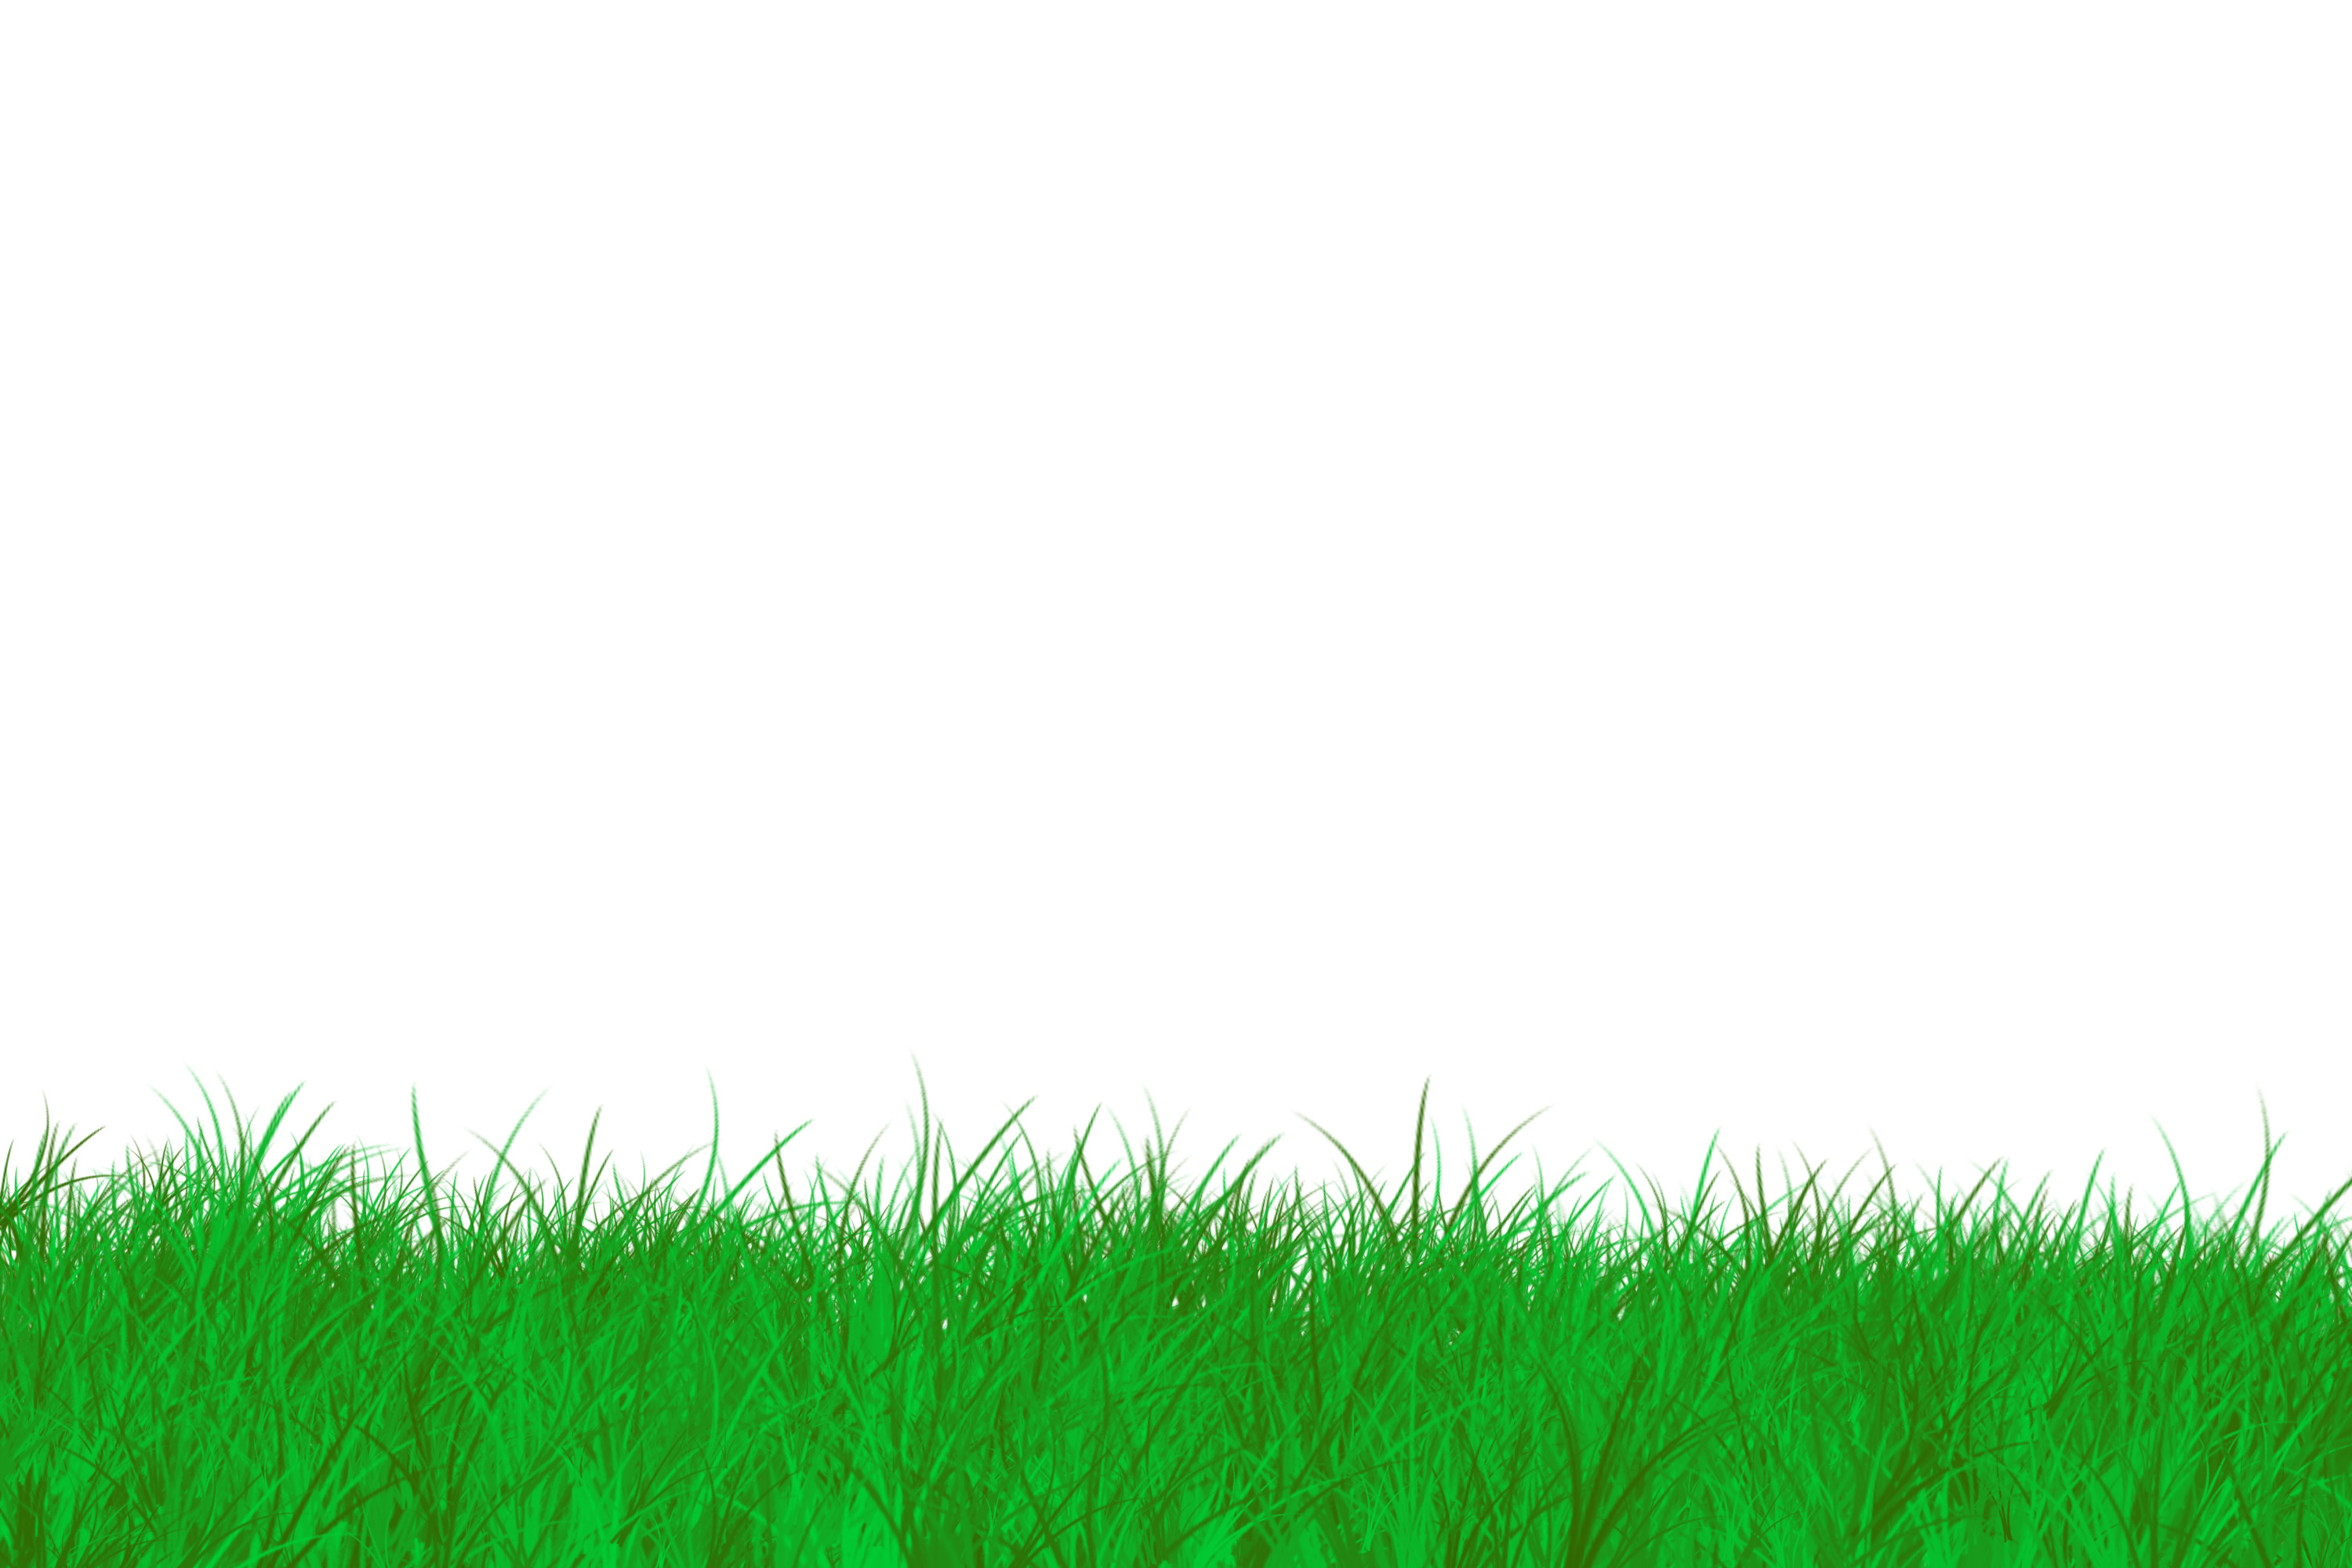 graphic transparent Lawn care clipart high grass. Clip art free images.